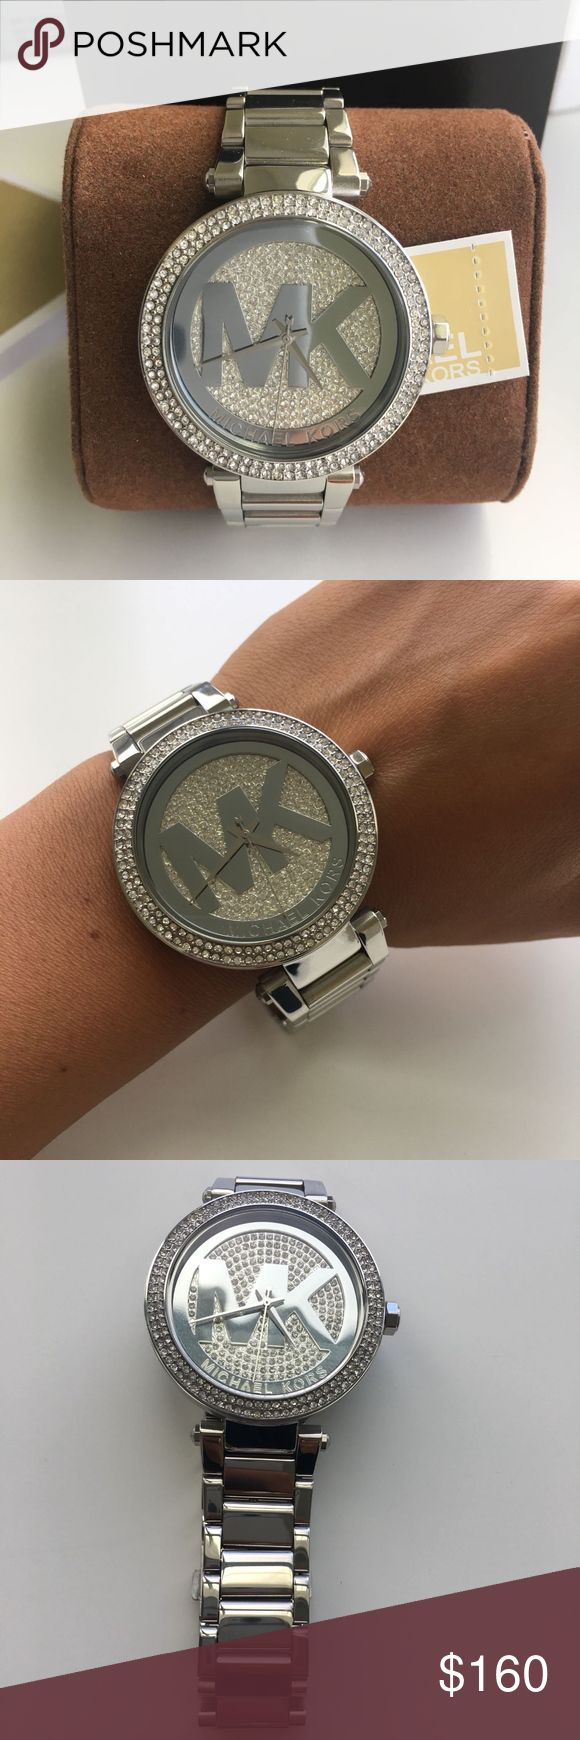 BRAND NEW Michael Kors Silver Ladies Watch MK5925 NEW MICHAEL KORS IN THE ORIGINAL BOX WITH TAG.  Parker Silver Crystal Pave Dial tainless Steel Ladies Watch MK5925. Case Size : 39mm Michael Kors Accessories Watches